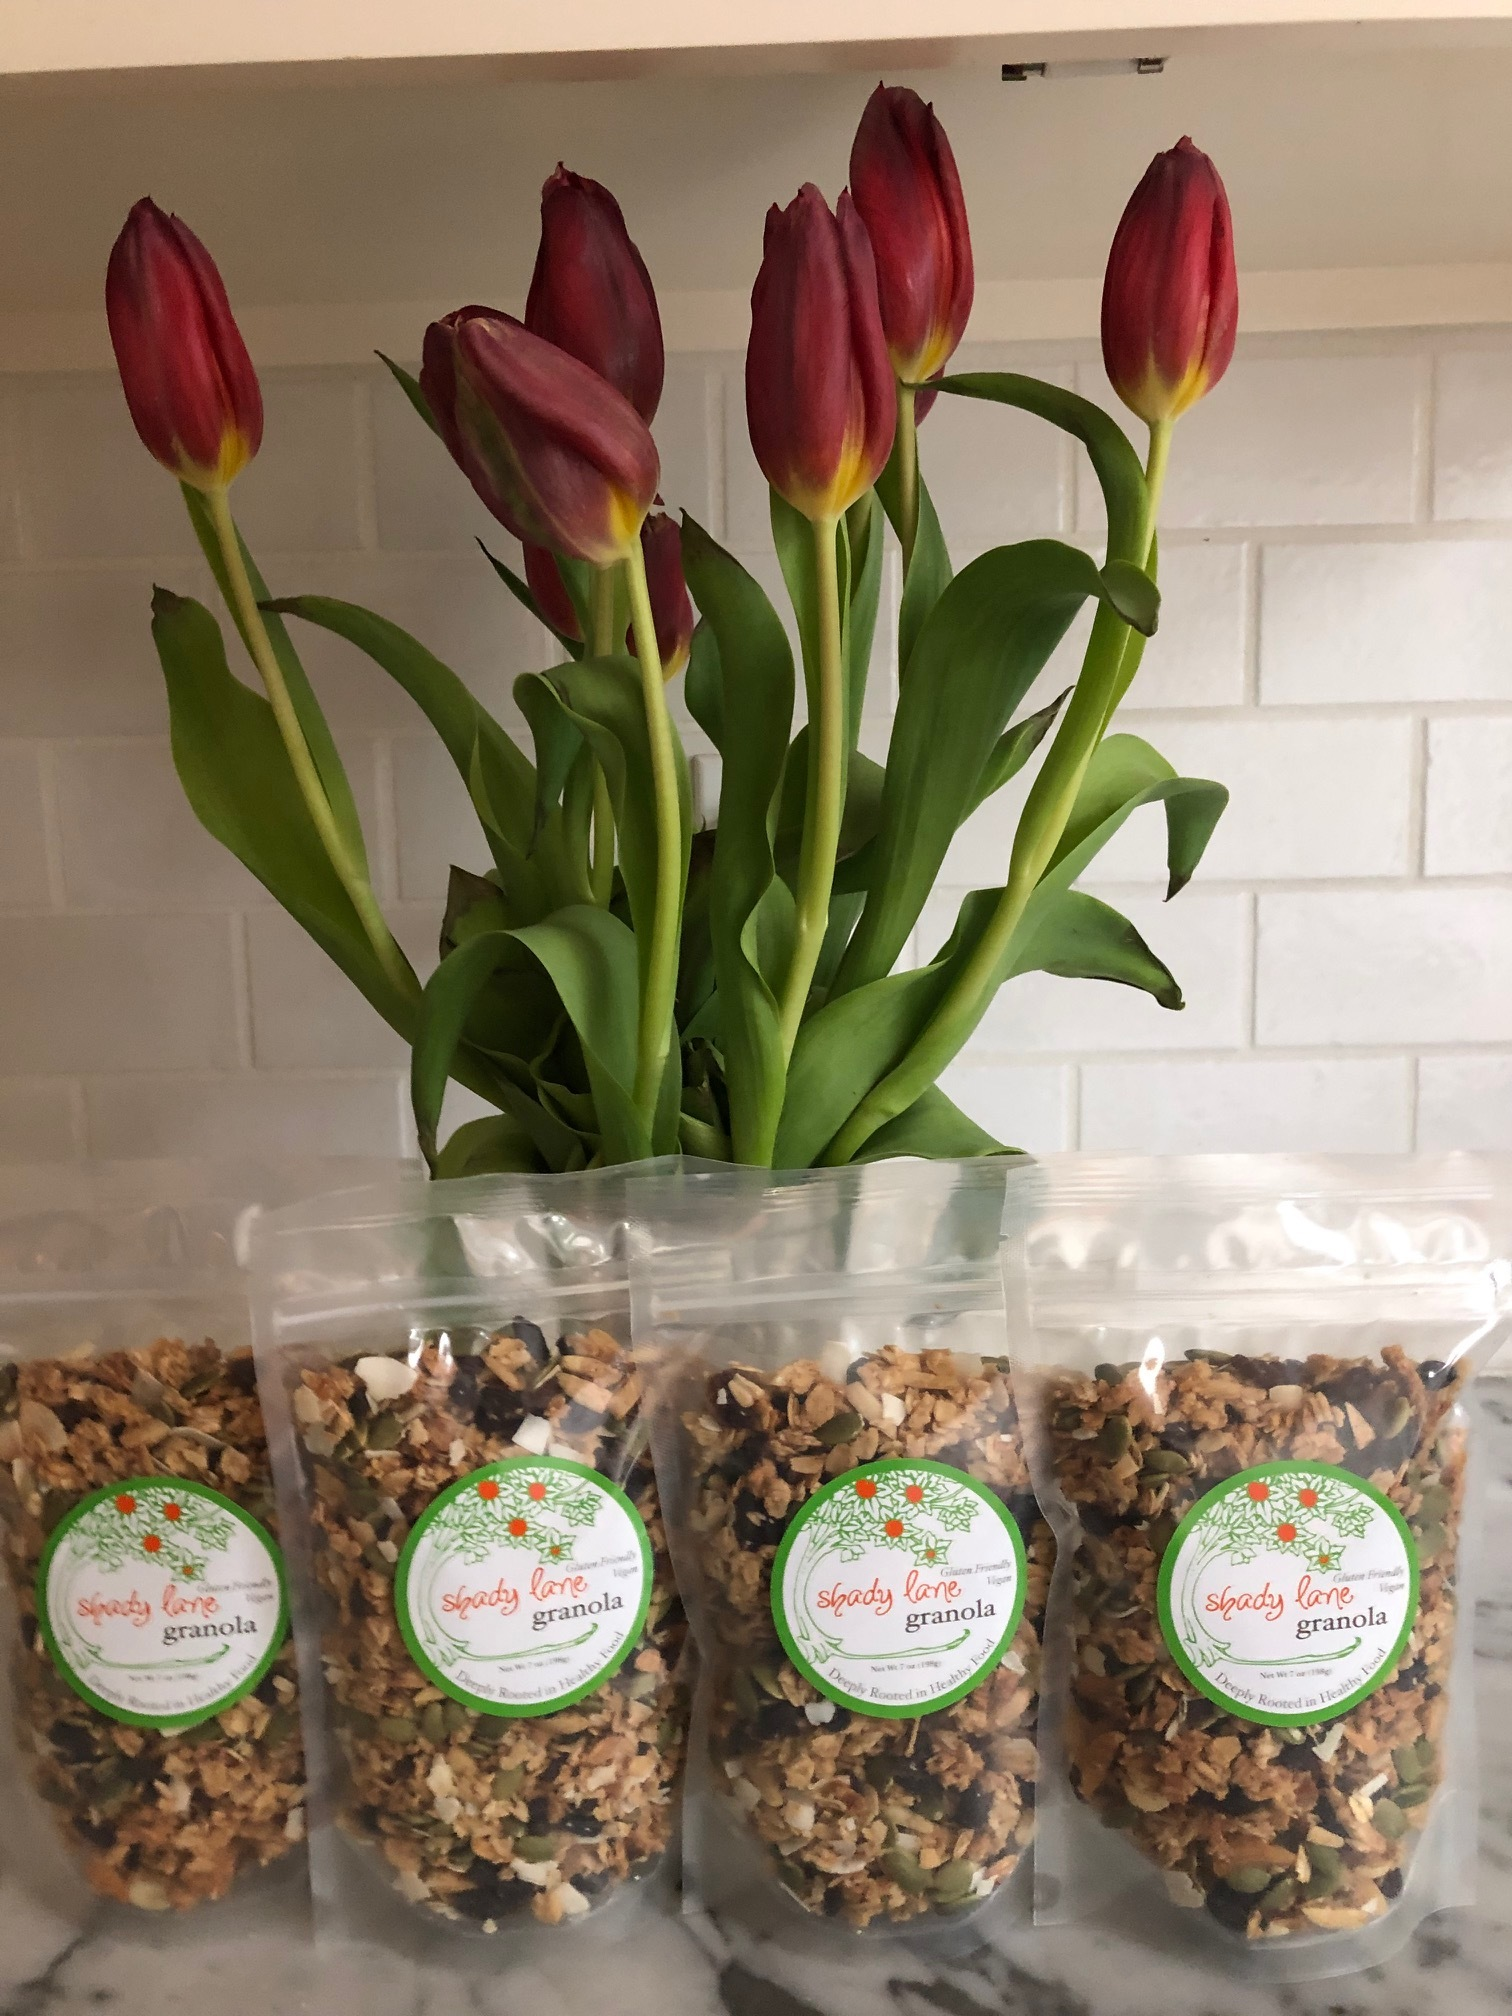 Find Shady Lane Granola… - …now at Dave's Market in East Greenwich and at the fabulous Johnson's Roadside Farm Market in Swansea!